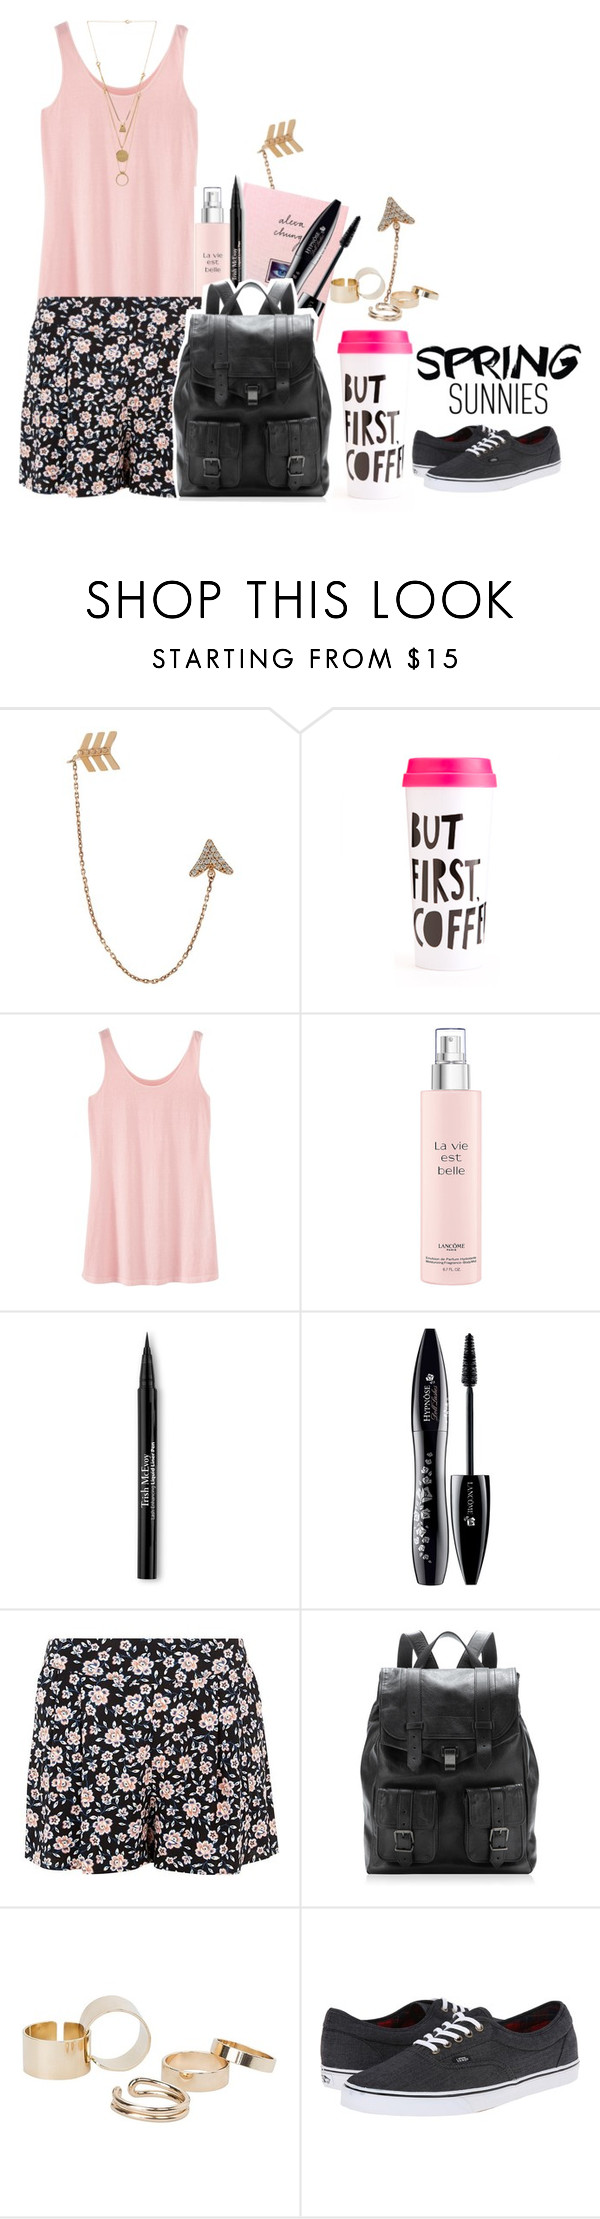 """""""SPRING IS HERE!!!!!!!!!!!!:D"""" by baileybear783 ❤ liked on Polyvore featuring Bee Goddess, ban.do, Lancôme, Trish McEvoy, Proenza Schouler, MANGO, Vans and Maison Margiela"""